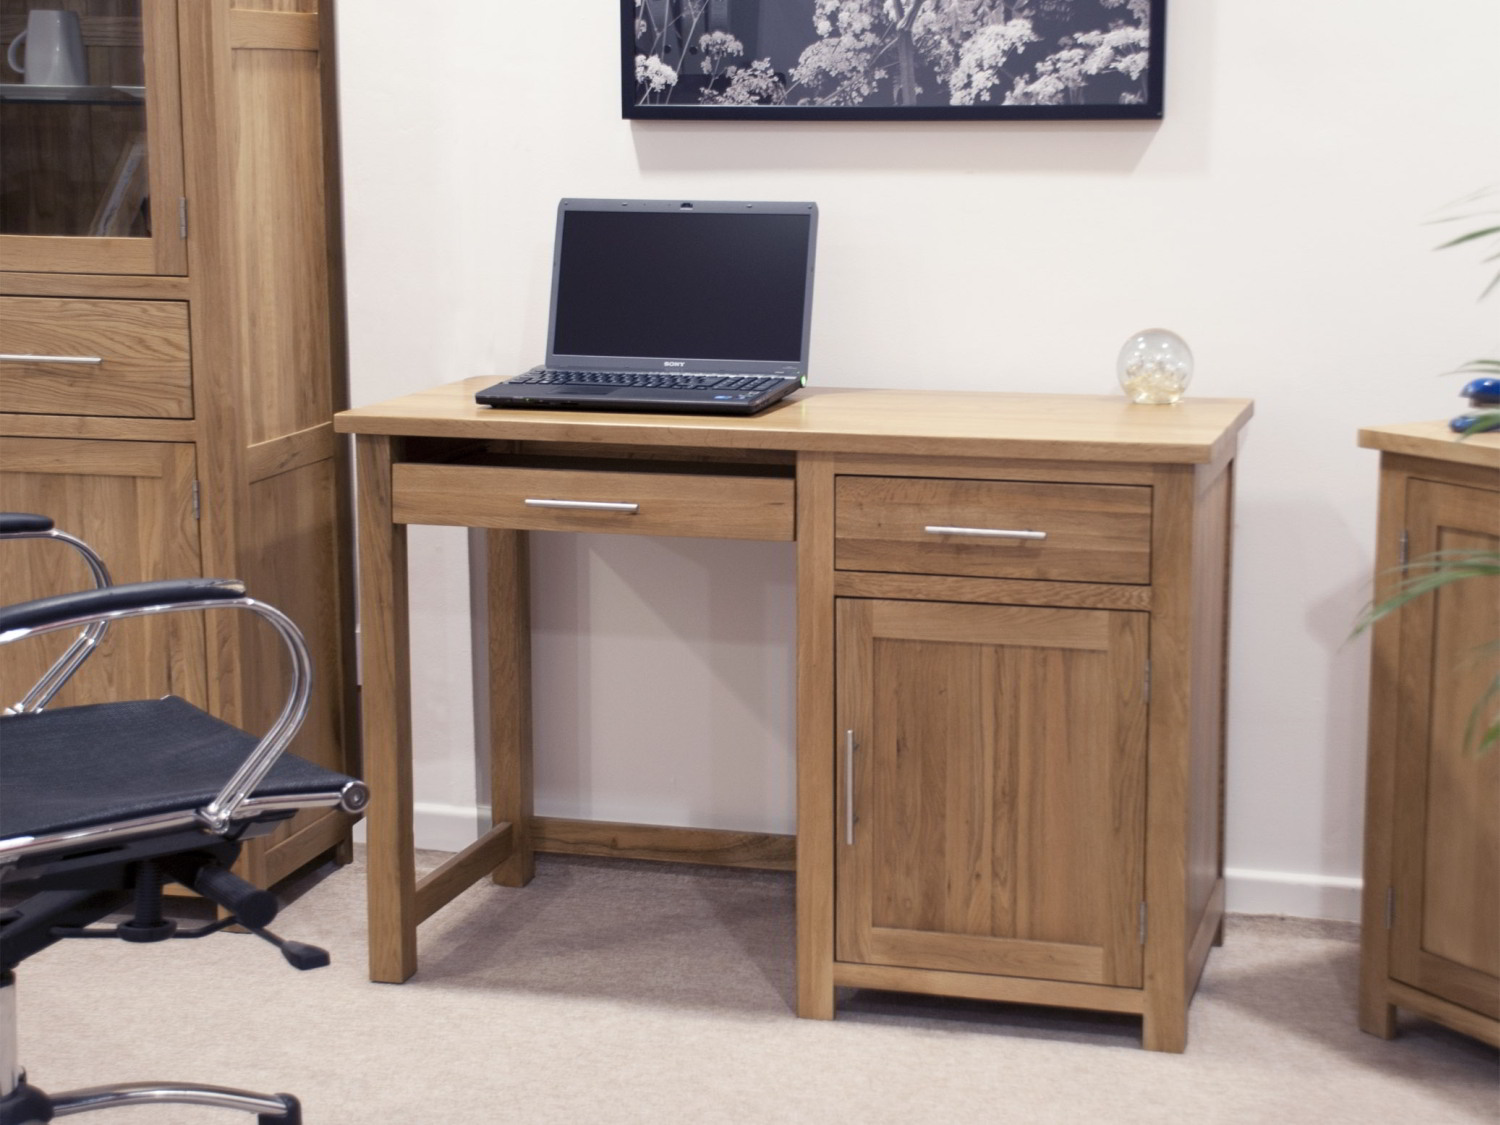 Eton Solid Oak Modern Furniture Small Office PC Computer